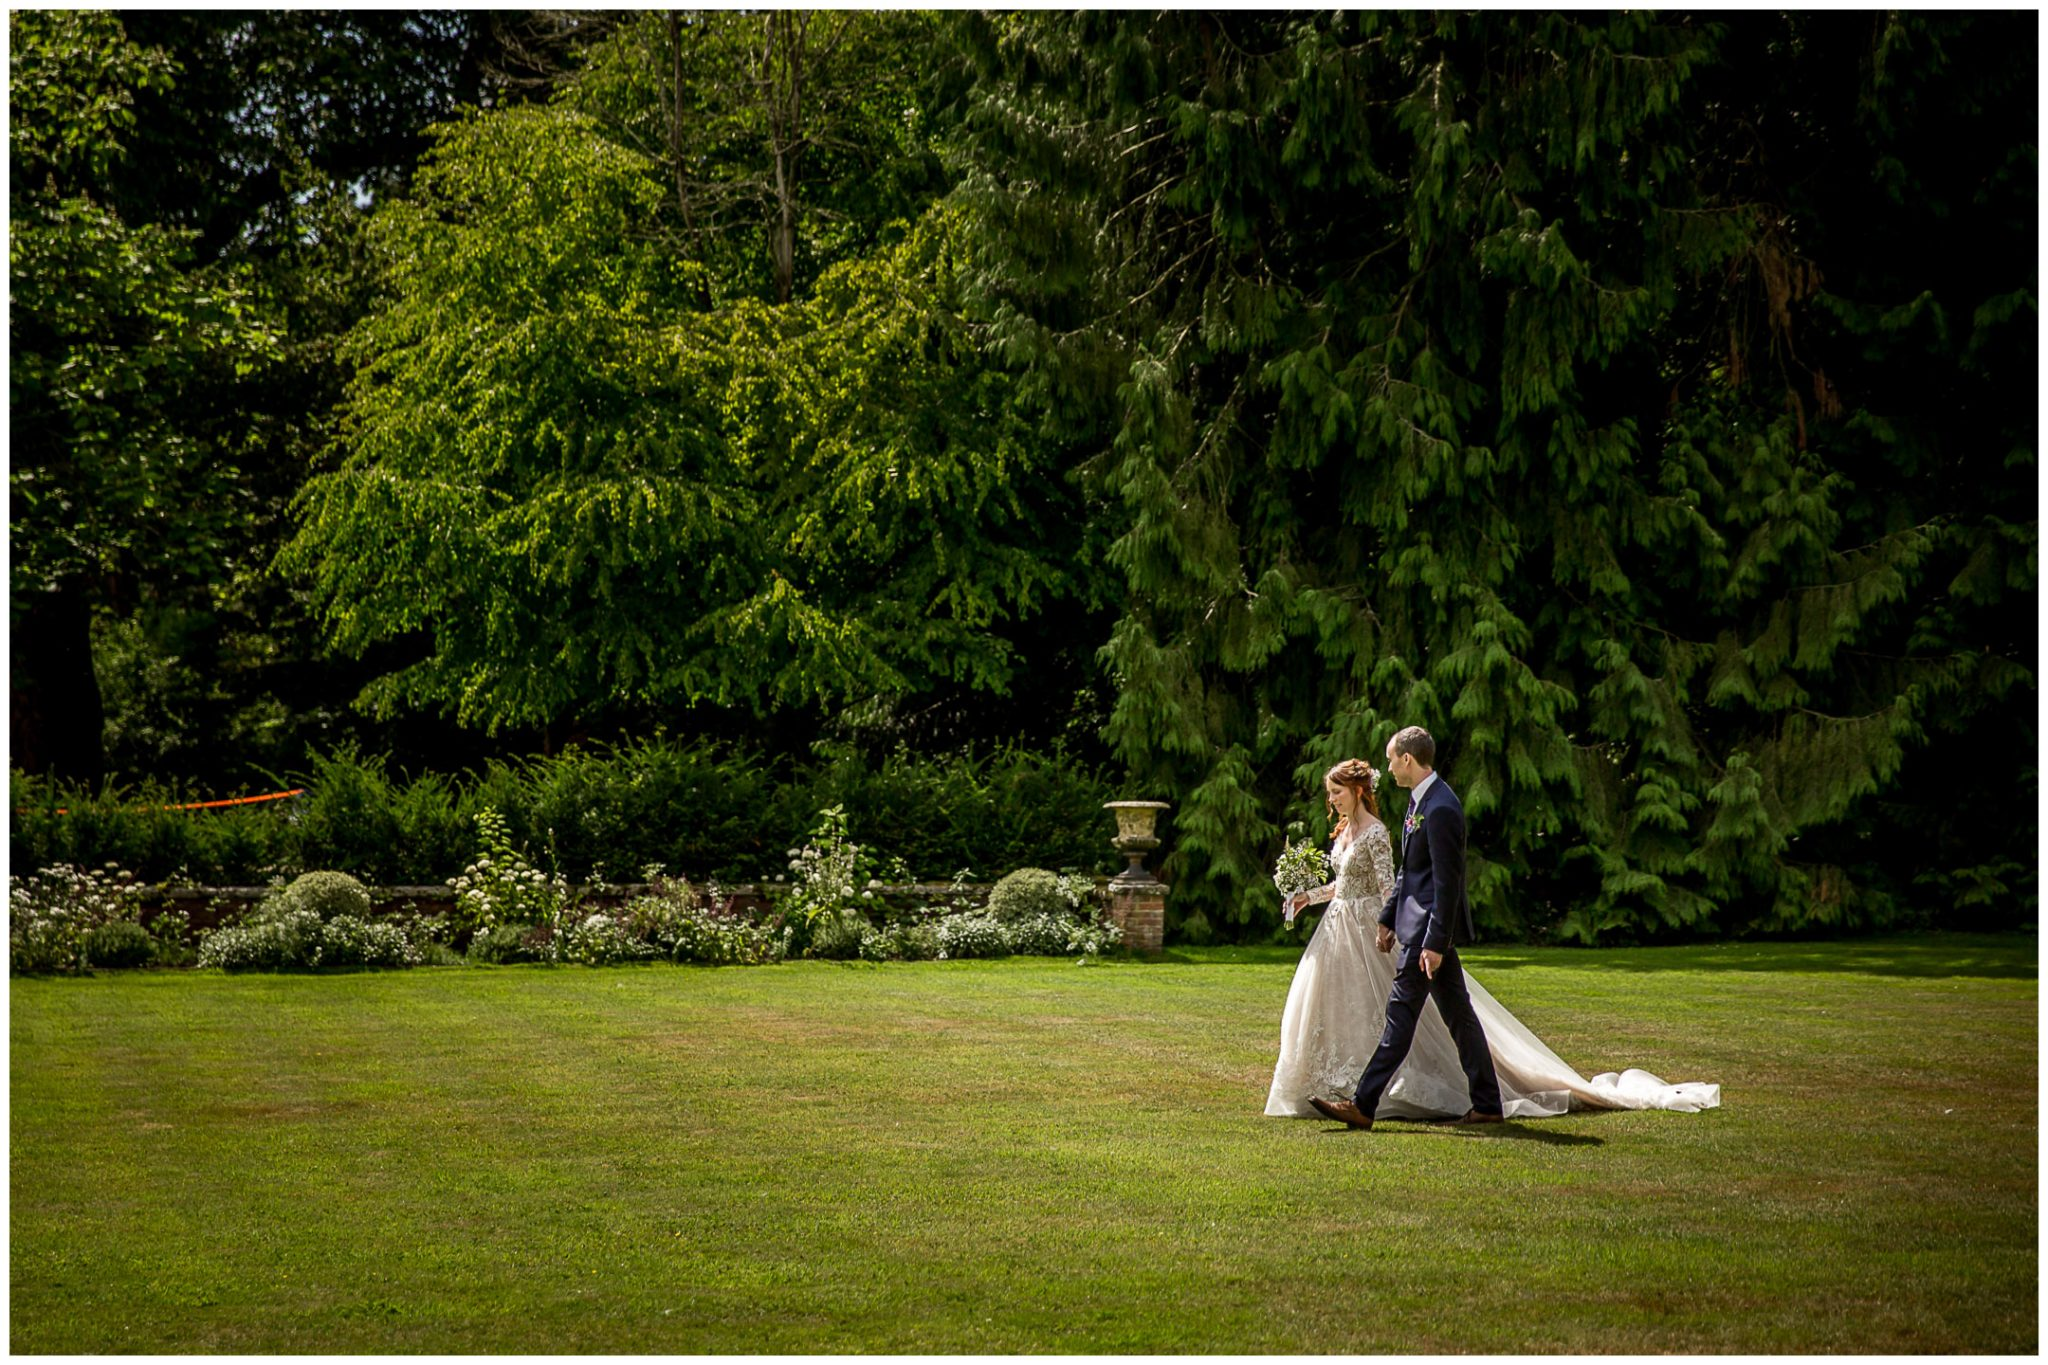 The couple walk across the lawn together towards their drinks reception